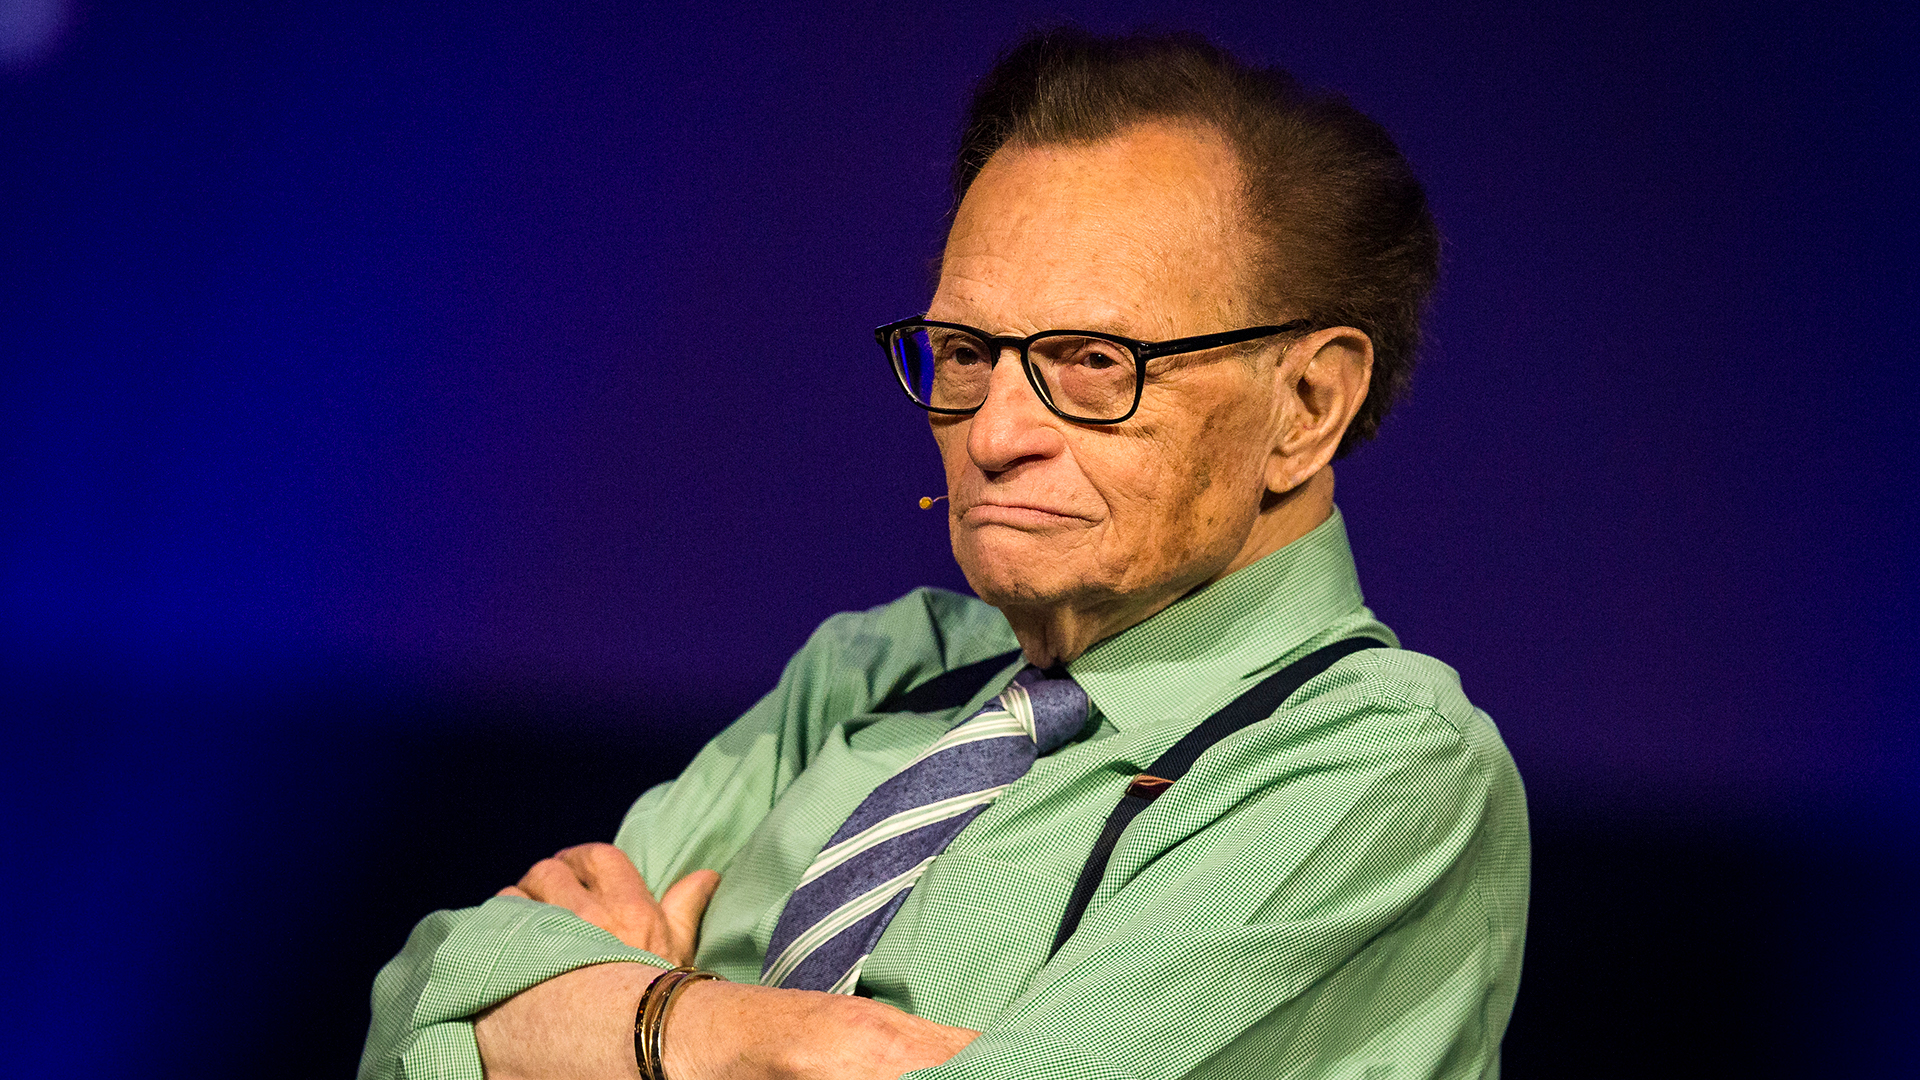 Larry King in 2017-159532.jpg38470607